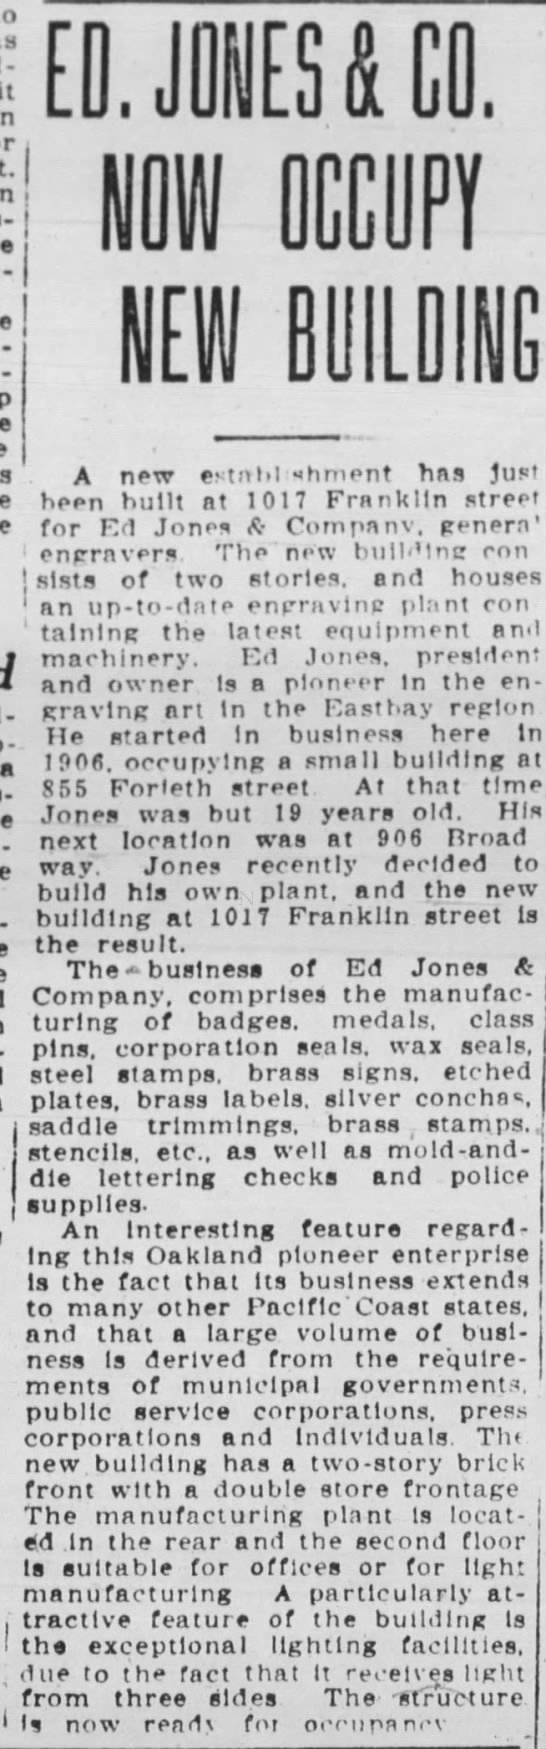 EdJonesNewBuilding OakTrib 08 March 1925